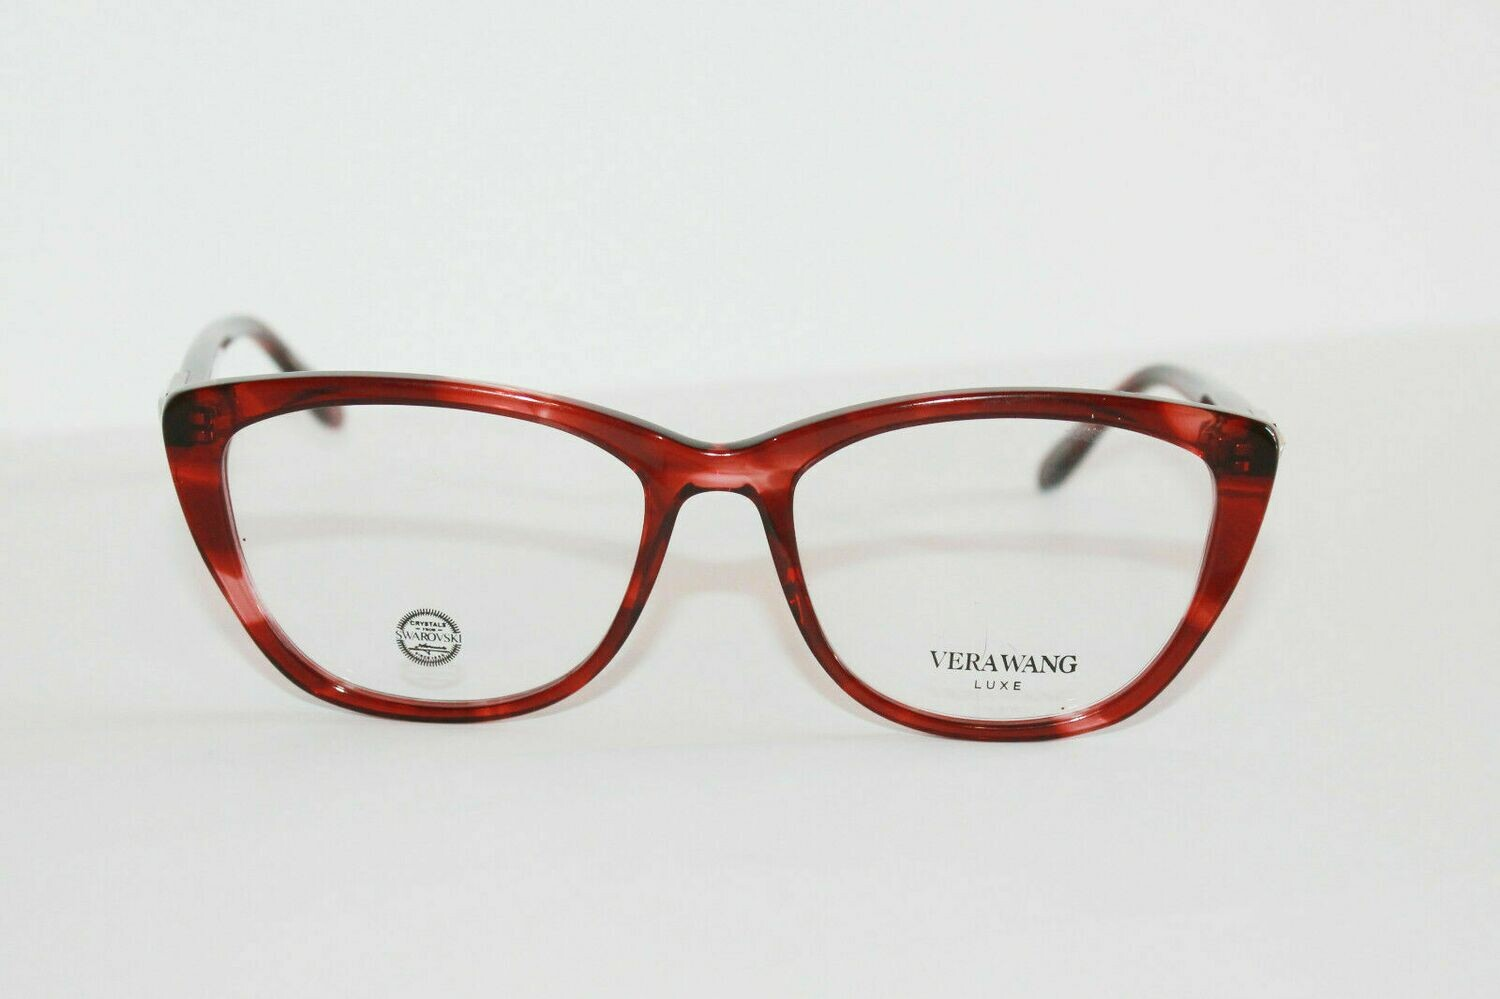 New Women Eyeglasses Vera Wang DEA RED 54-17-140 NEW and Authentic